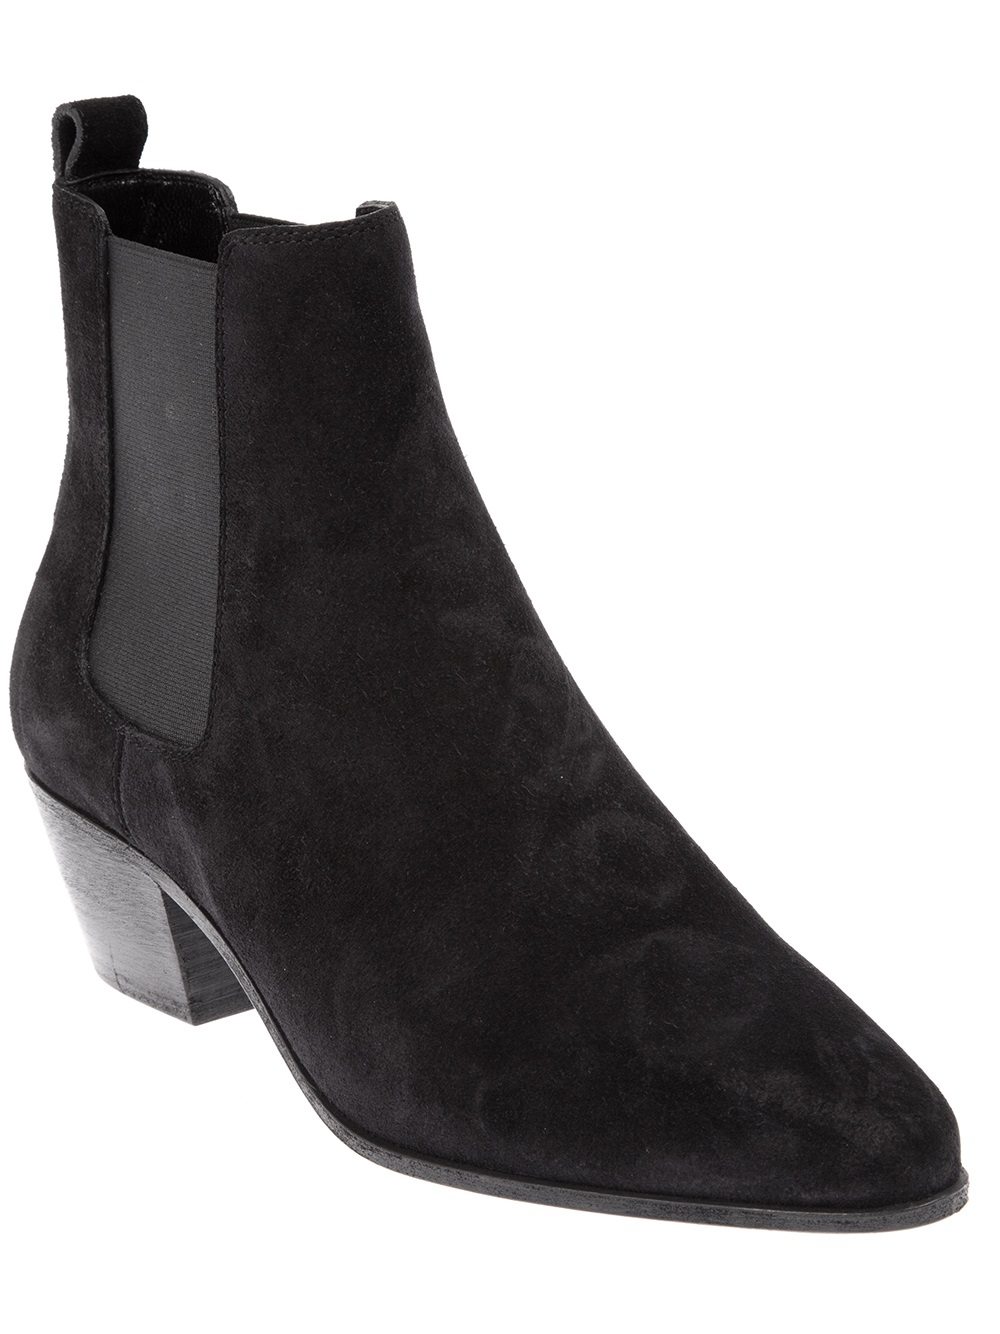 Saint laurent Suede Ankle Boots in Black - Save 11% | Lyst